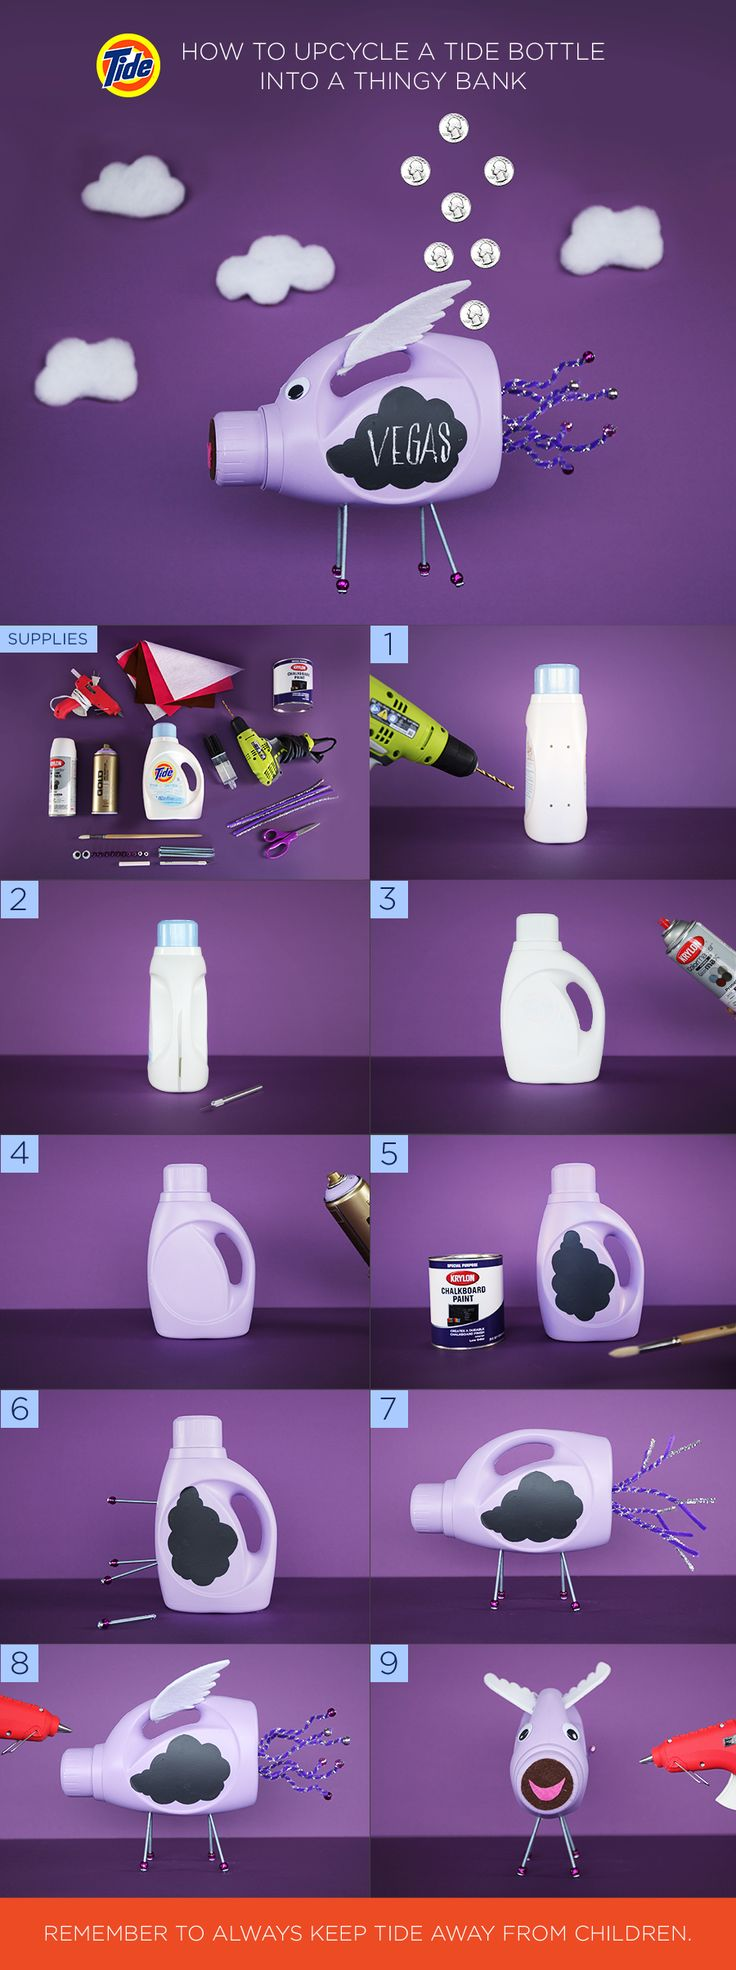 How to Upcycle a Tide Bottle Into a DIY Thingy Bank: (1) Rinse bottle. Drill leg holes on flat side. (2) Cut money deposit slit. (3) Spray prime white. (4) Spray paint lavender. (5) Paint black chalkboard both sides. (6) Place screws in leg holes. (7) Hot glue pipe cleaners to bottle. Twist together. (8) Cut wings from white felt and cardboard. Hot glue together, then to bottle. (9) Cut mouth from felt. Hot glue mouth and eyes to the bottle. Then get saving, and recycling.